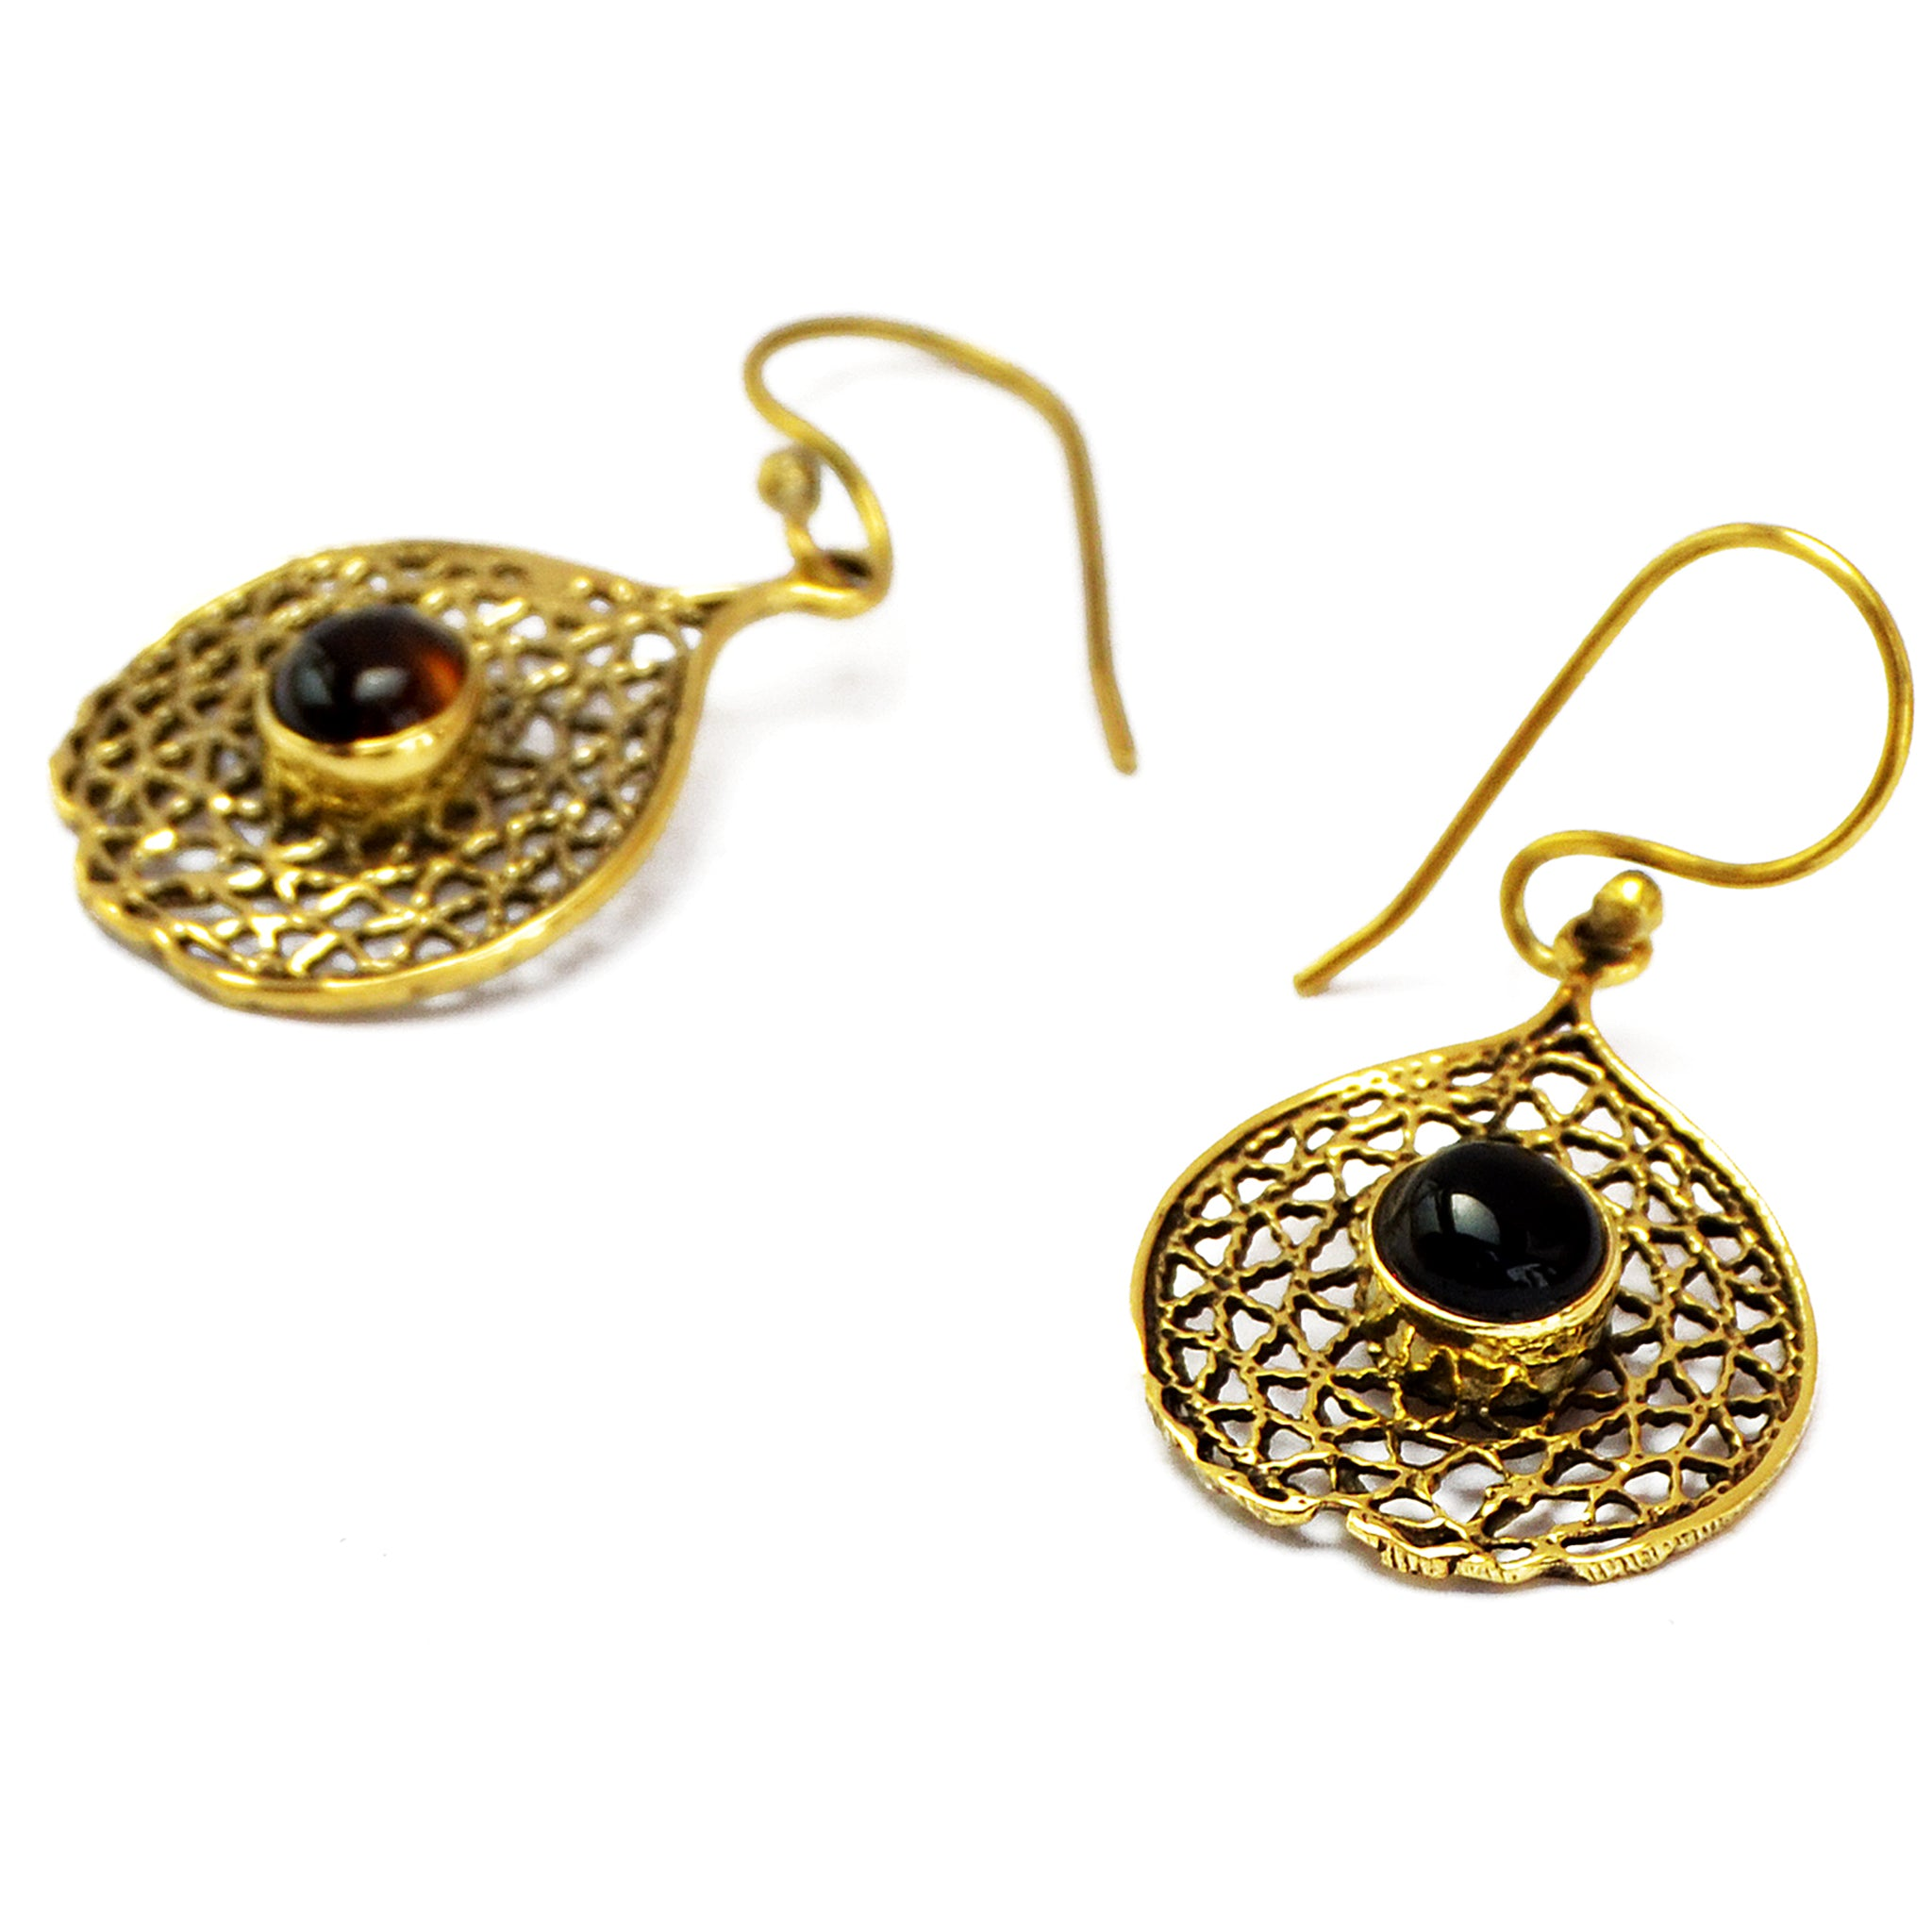 Delicate filigree earrings